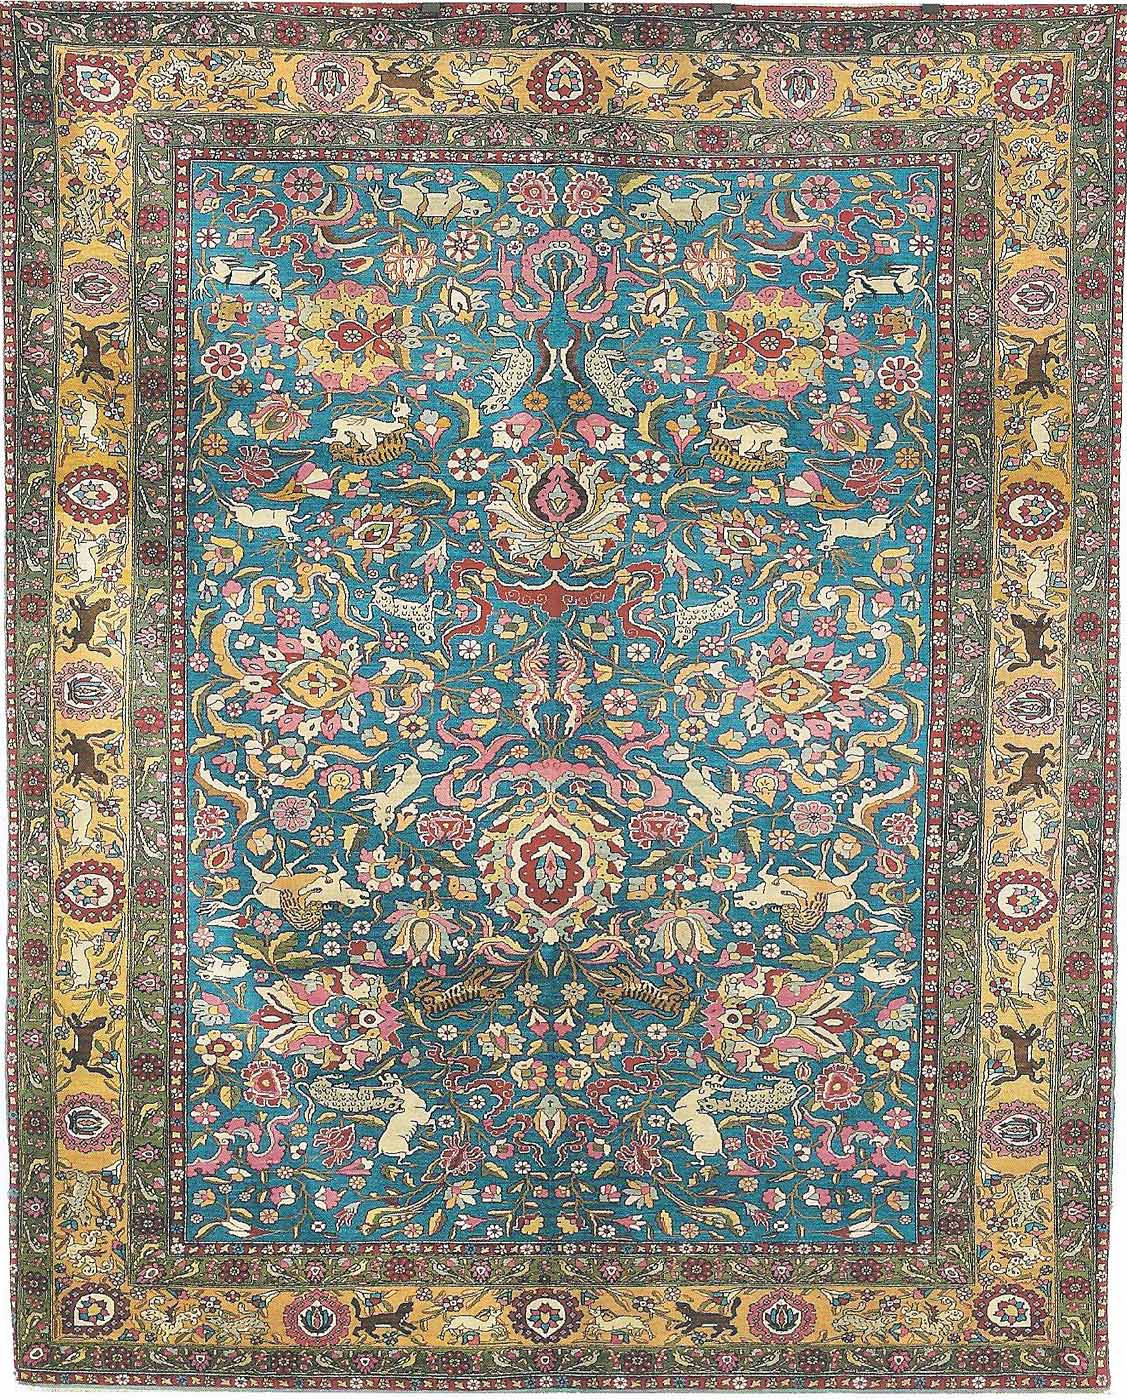 times persian of rug for heriz picture york new oriental incredible jersey full sale rugs antique city size inspirations